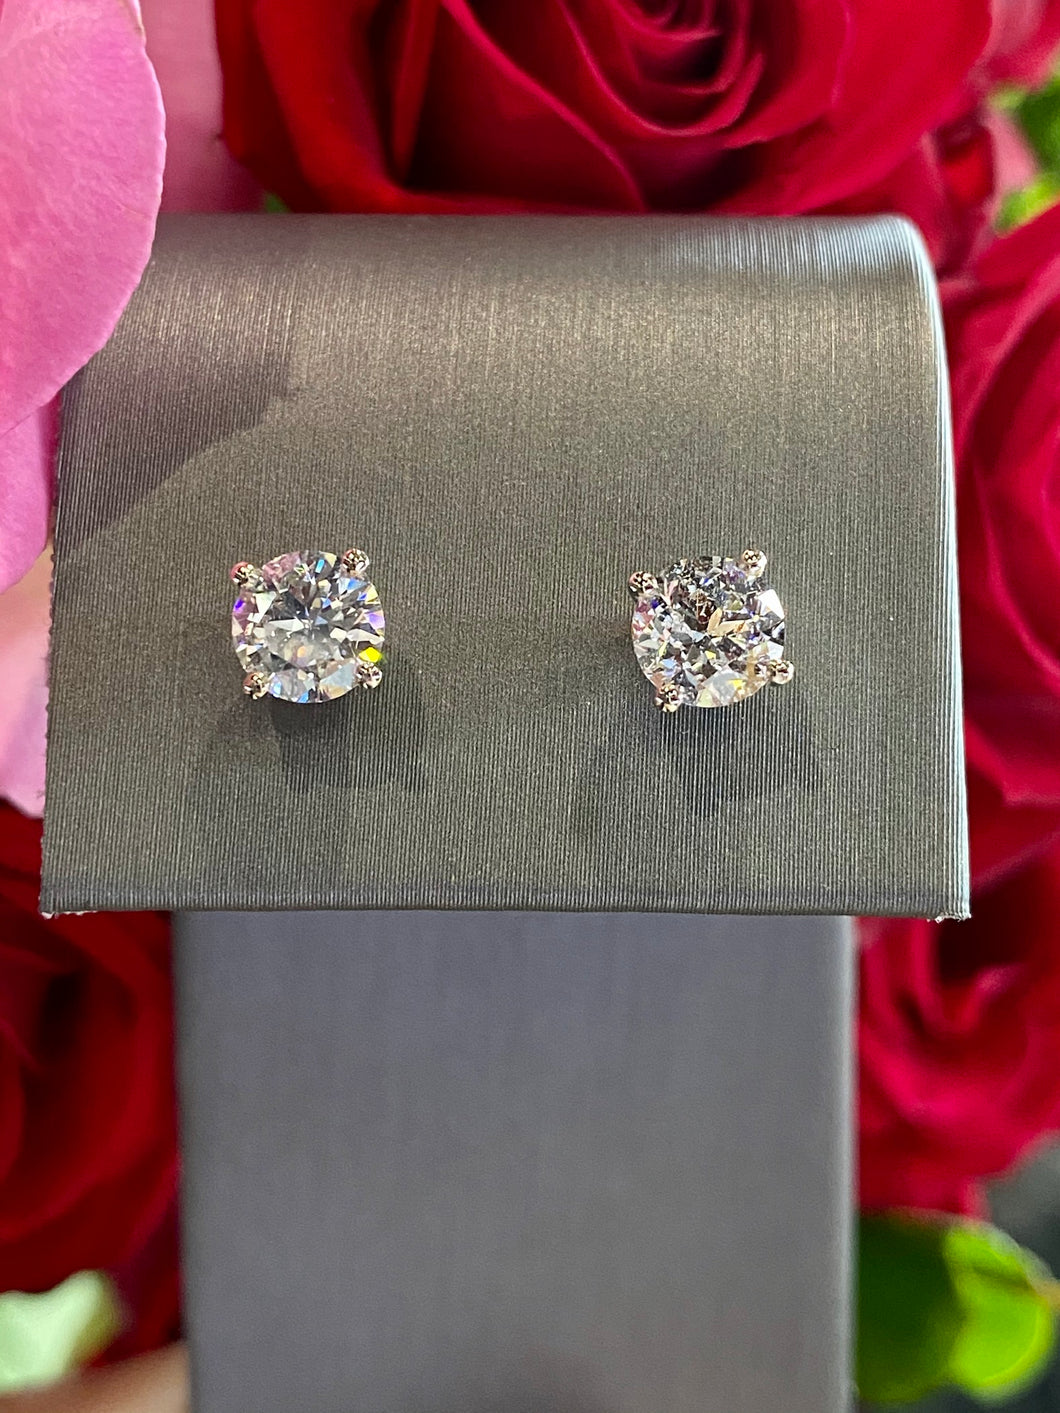 Diamond Stud Earrings 1.47 total carats in 14K White Gold